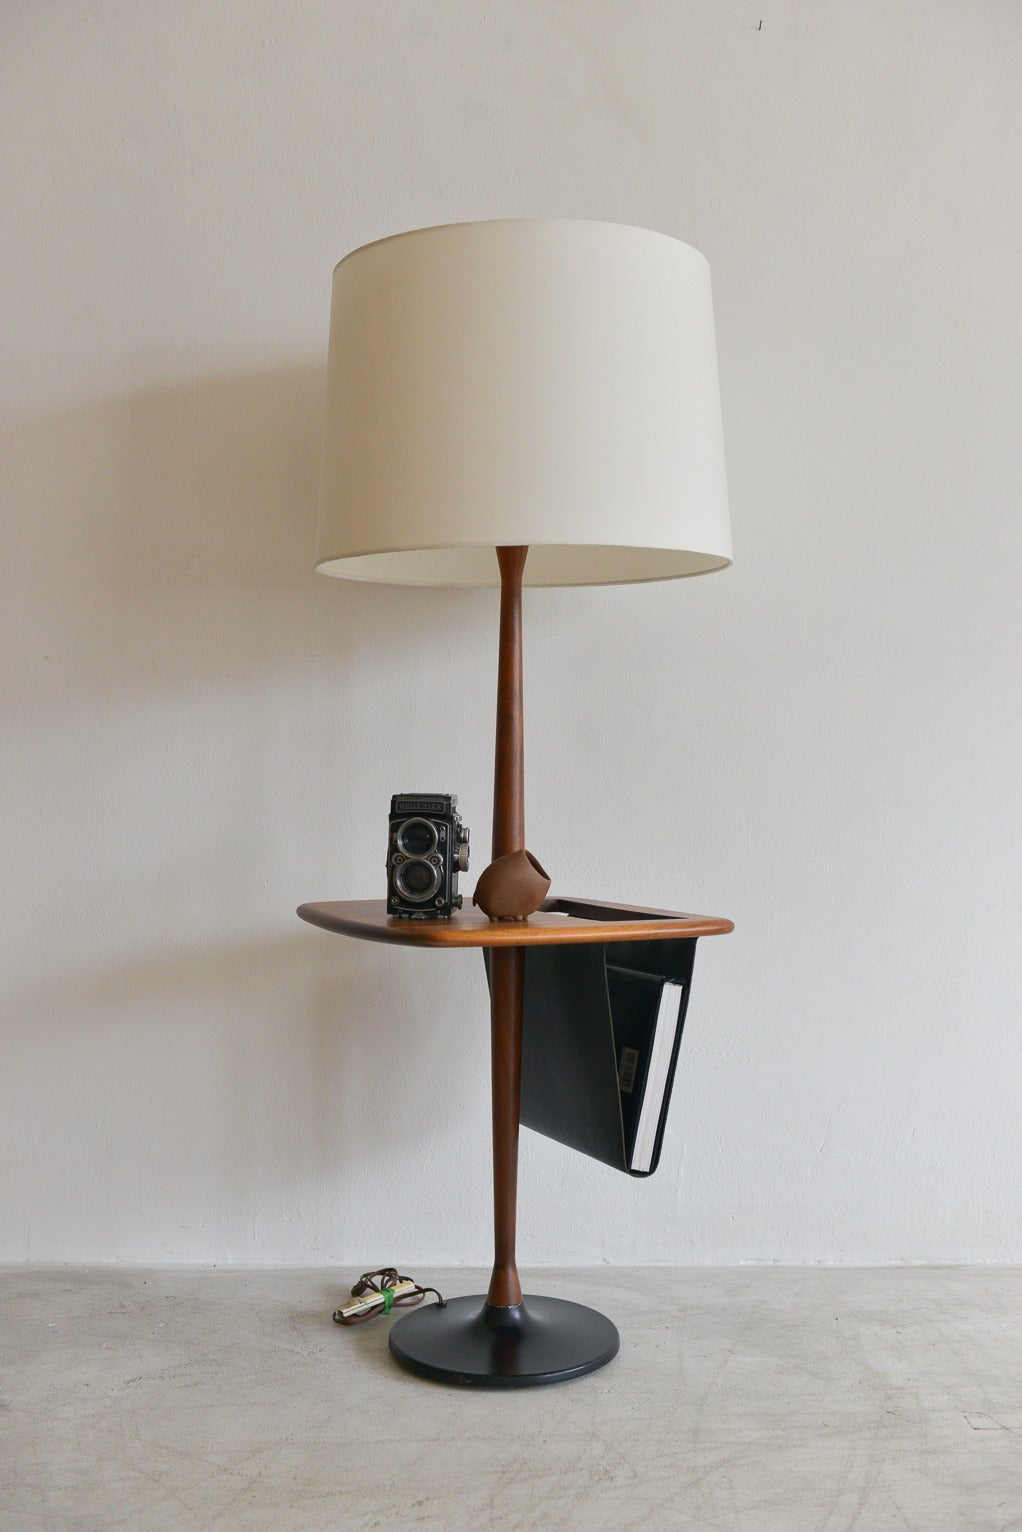 Walnut lamp with leather magazine holder at 1stdibs walnut lamp with leather magazine holder 2 geotapseo Image collections